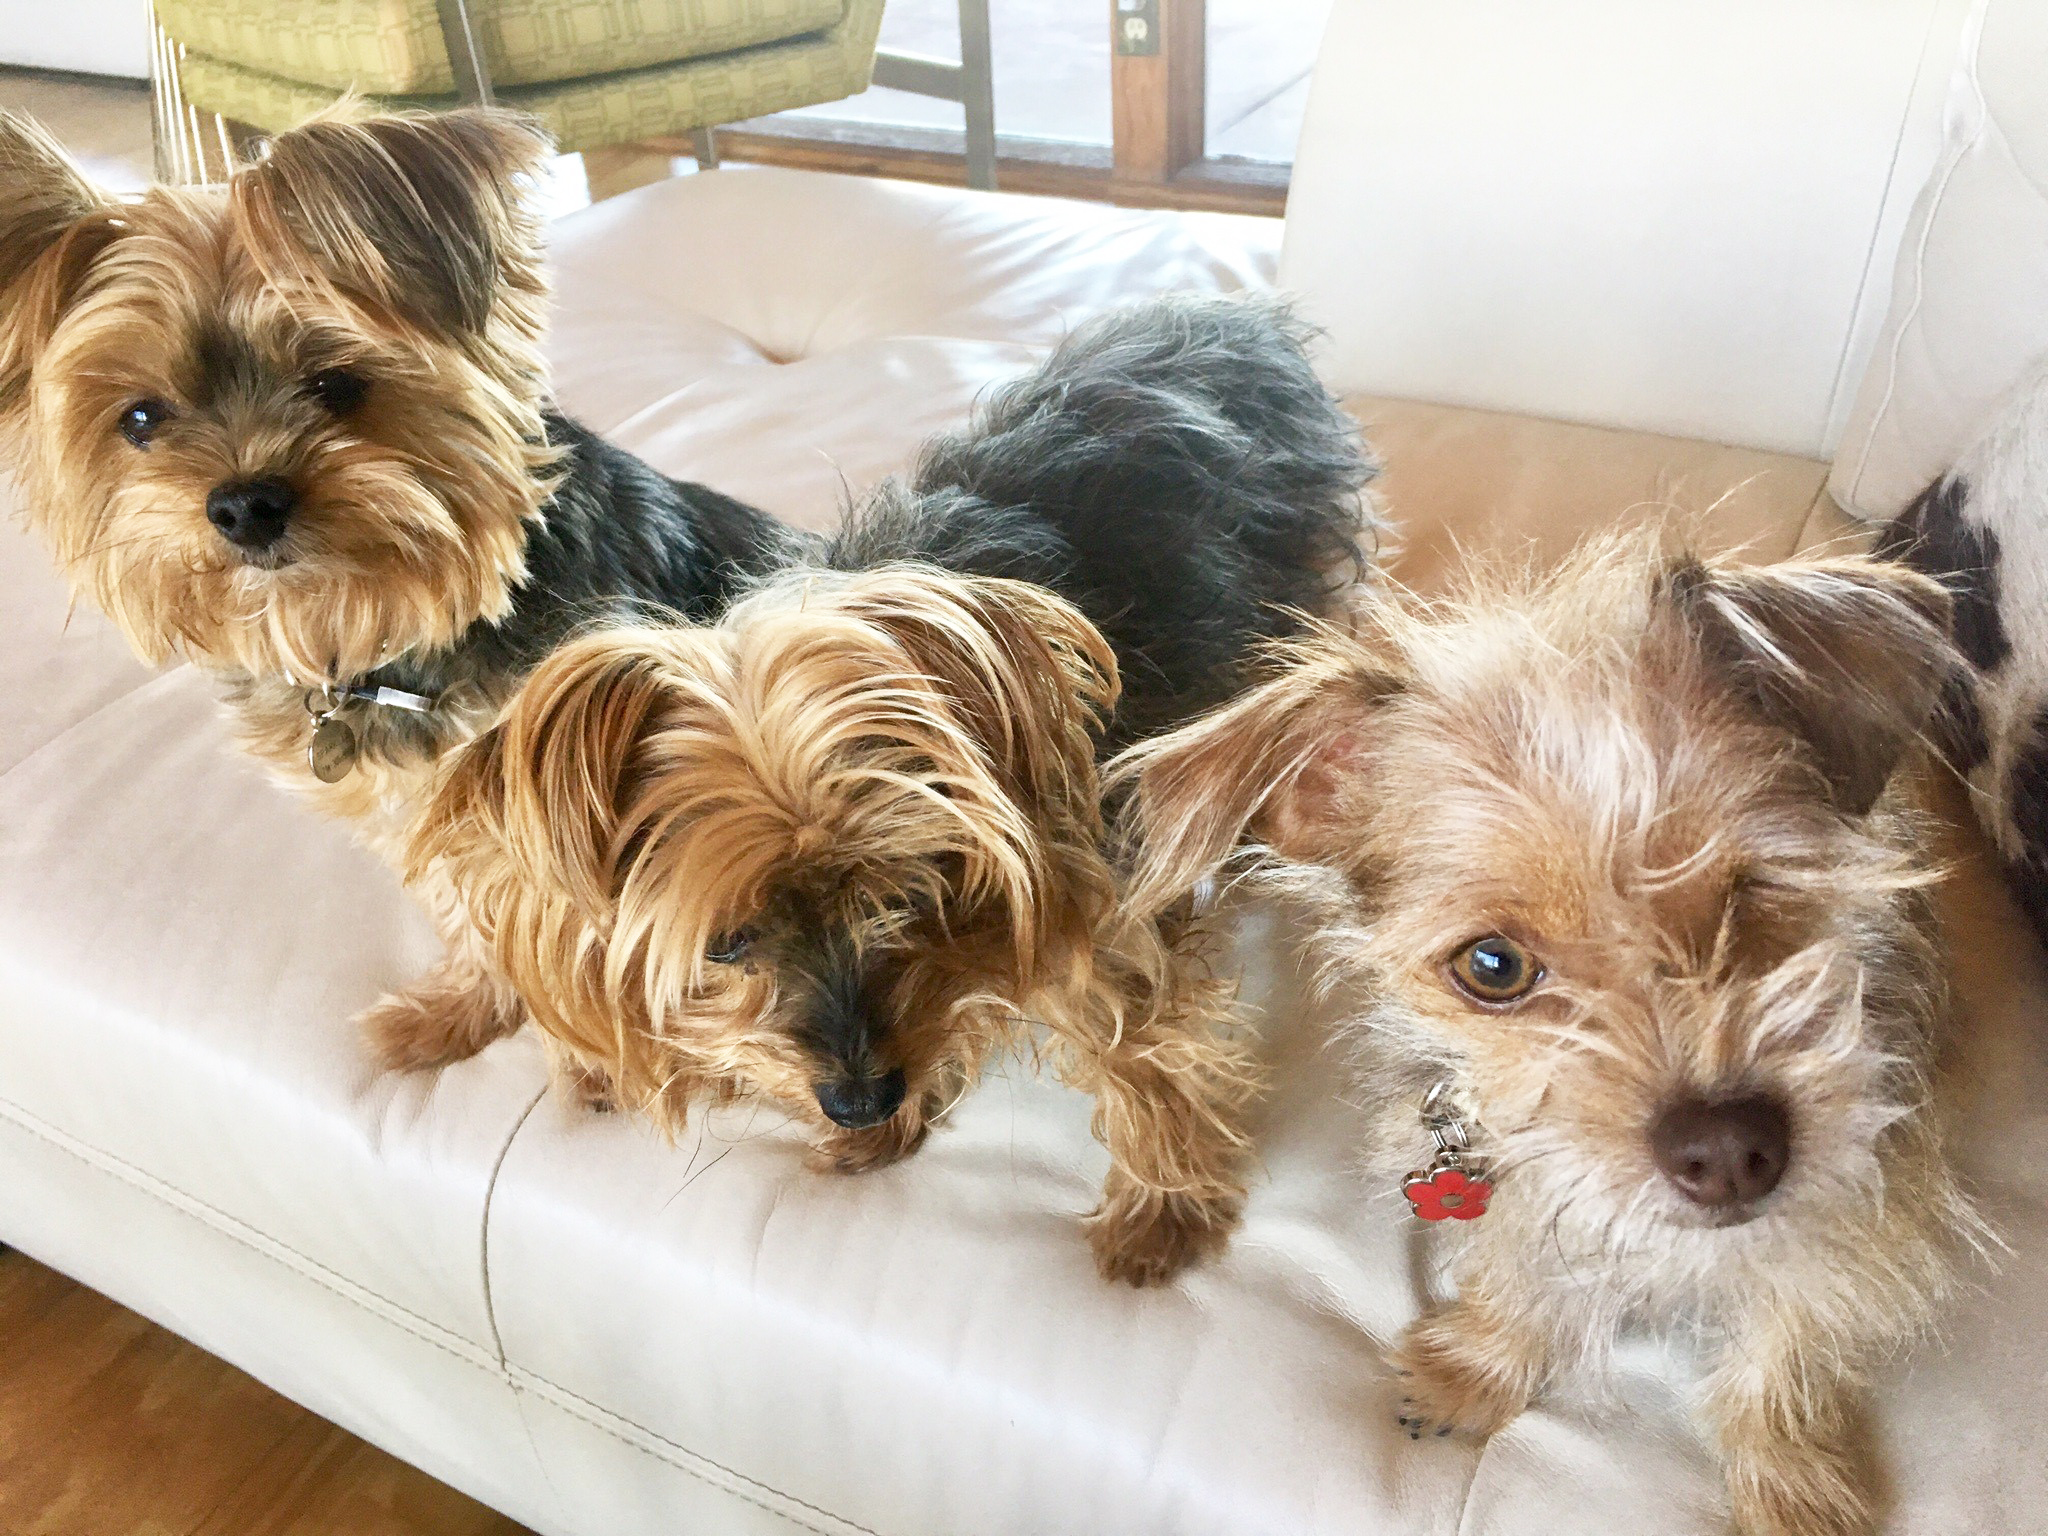 Sullivan Pack: Submitted by Andrea Sullivan The Sullivan Pack! Yorkies Fiji and Sparkles and their sister Olive, a Terrier Mix, enjoy life with the Sullivans.